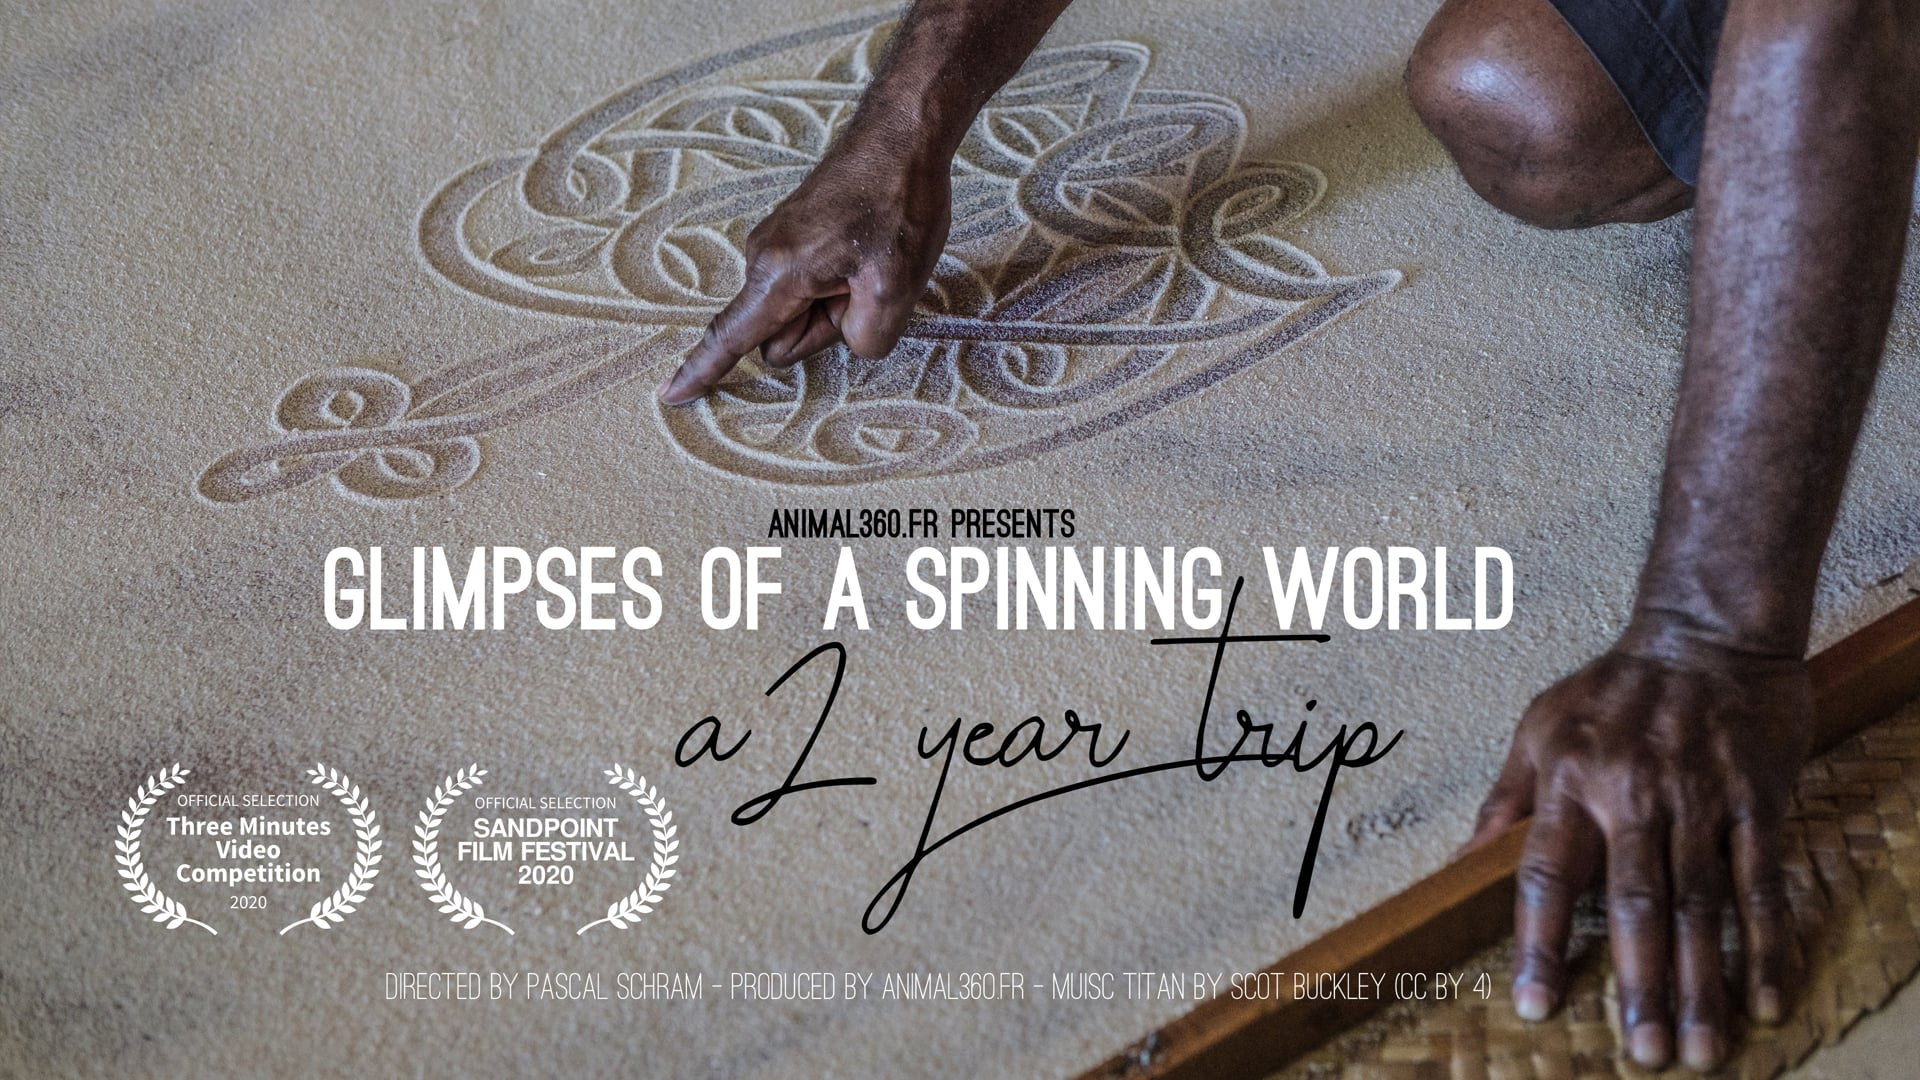 Glimpses of a spinning world